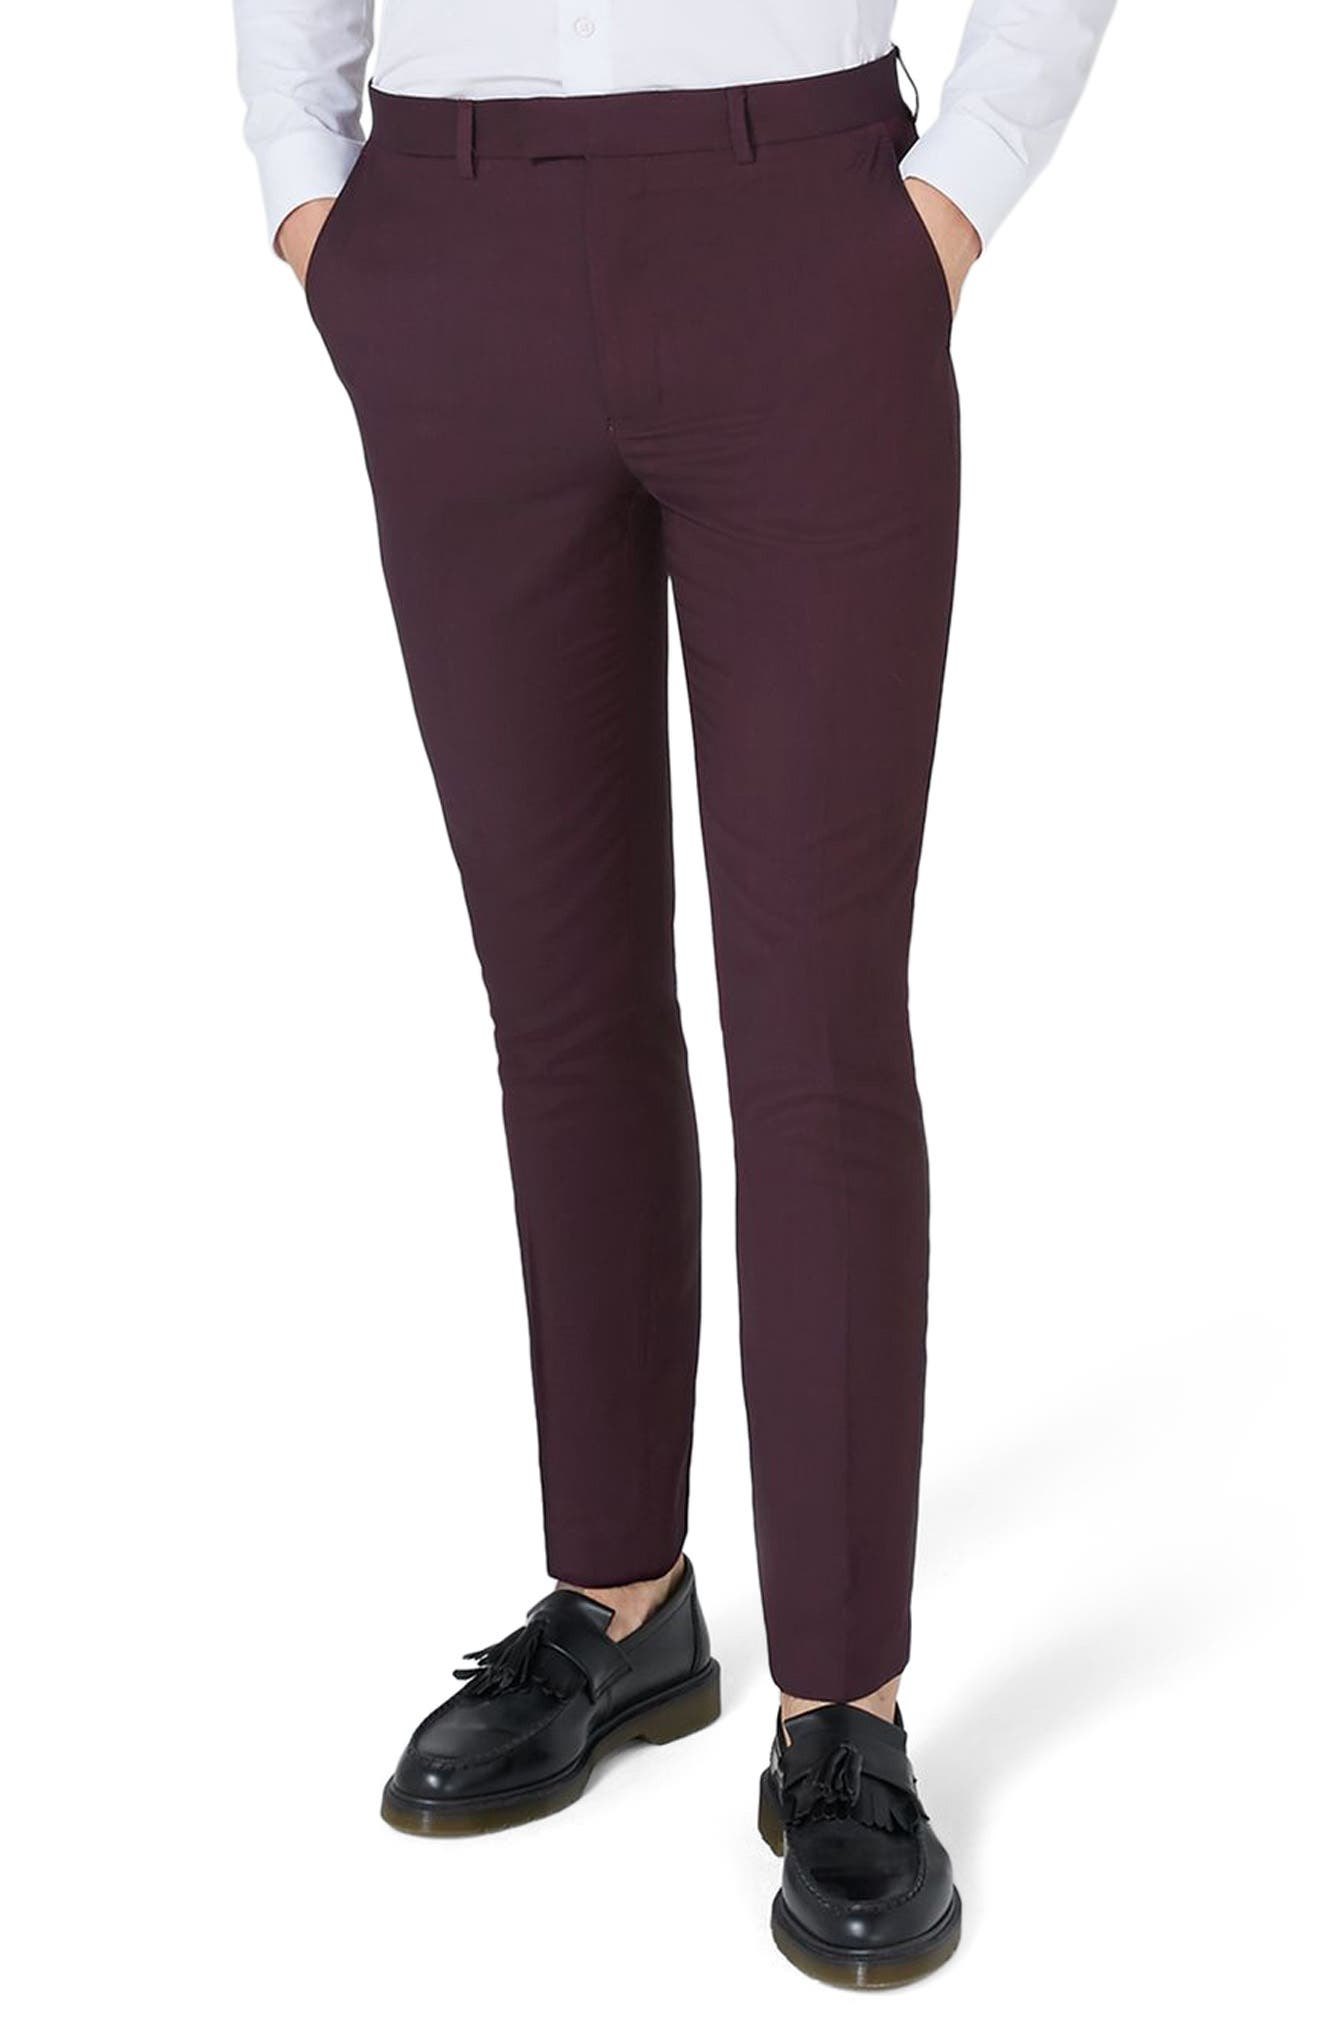 Skinny Fit Plum Suit Trousers,                         Main,                         color, Plum